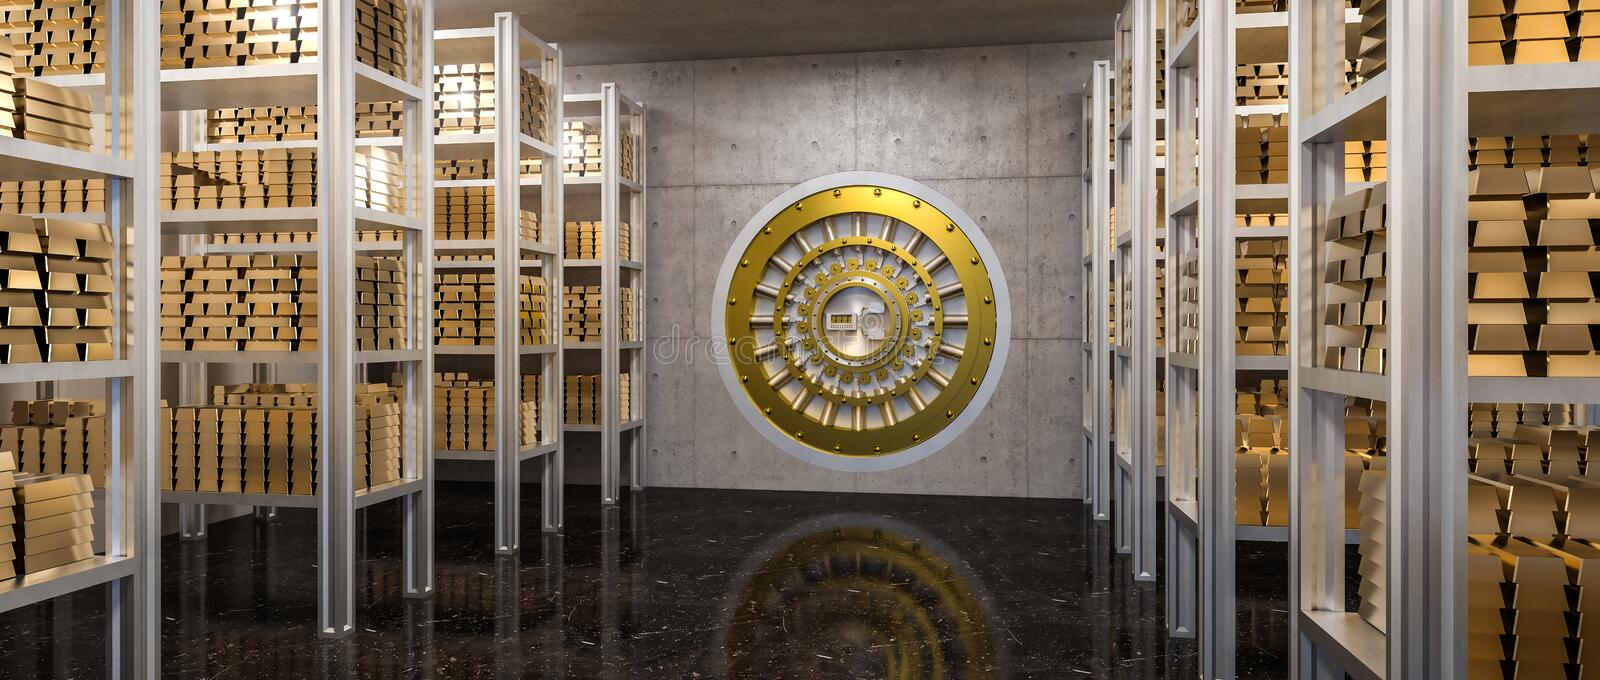 Gold ingot in vault. 3d rendering of gold ingot in bank vault view from inside royalty free illustration